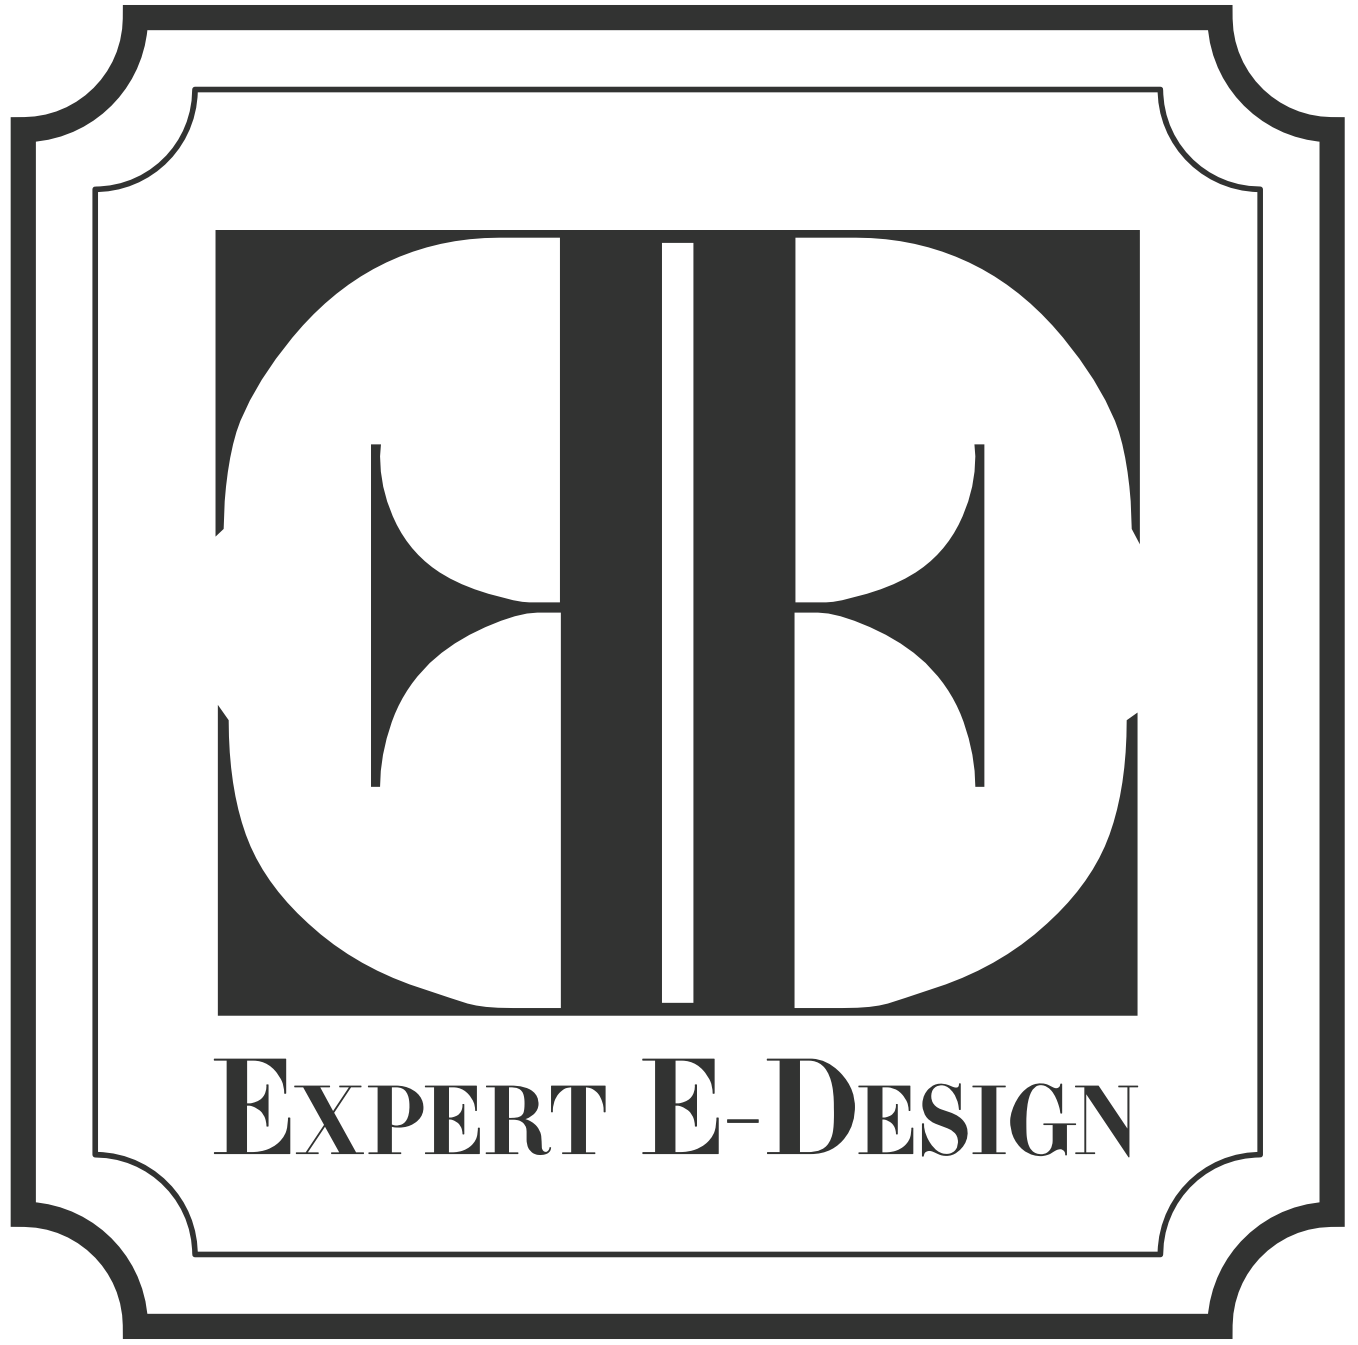 Certified Expert E-Designer Training Program